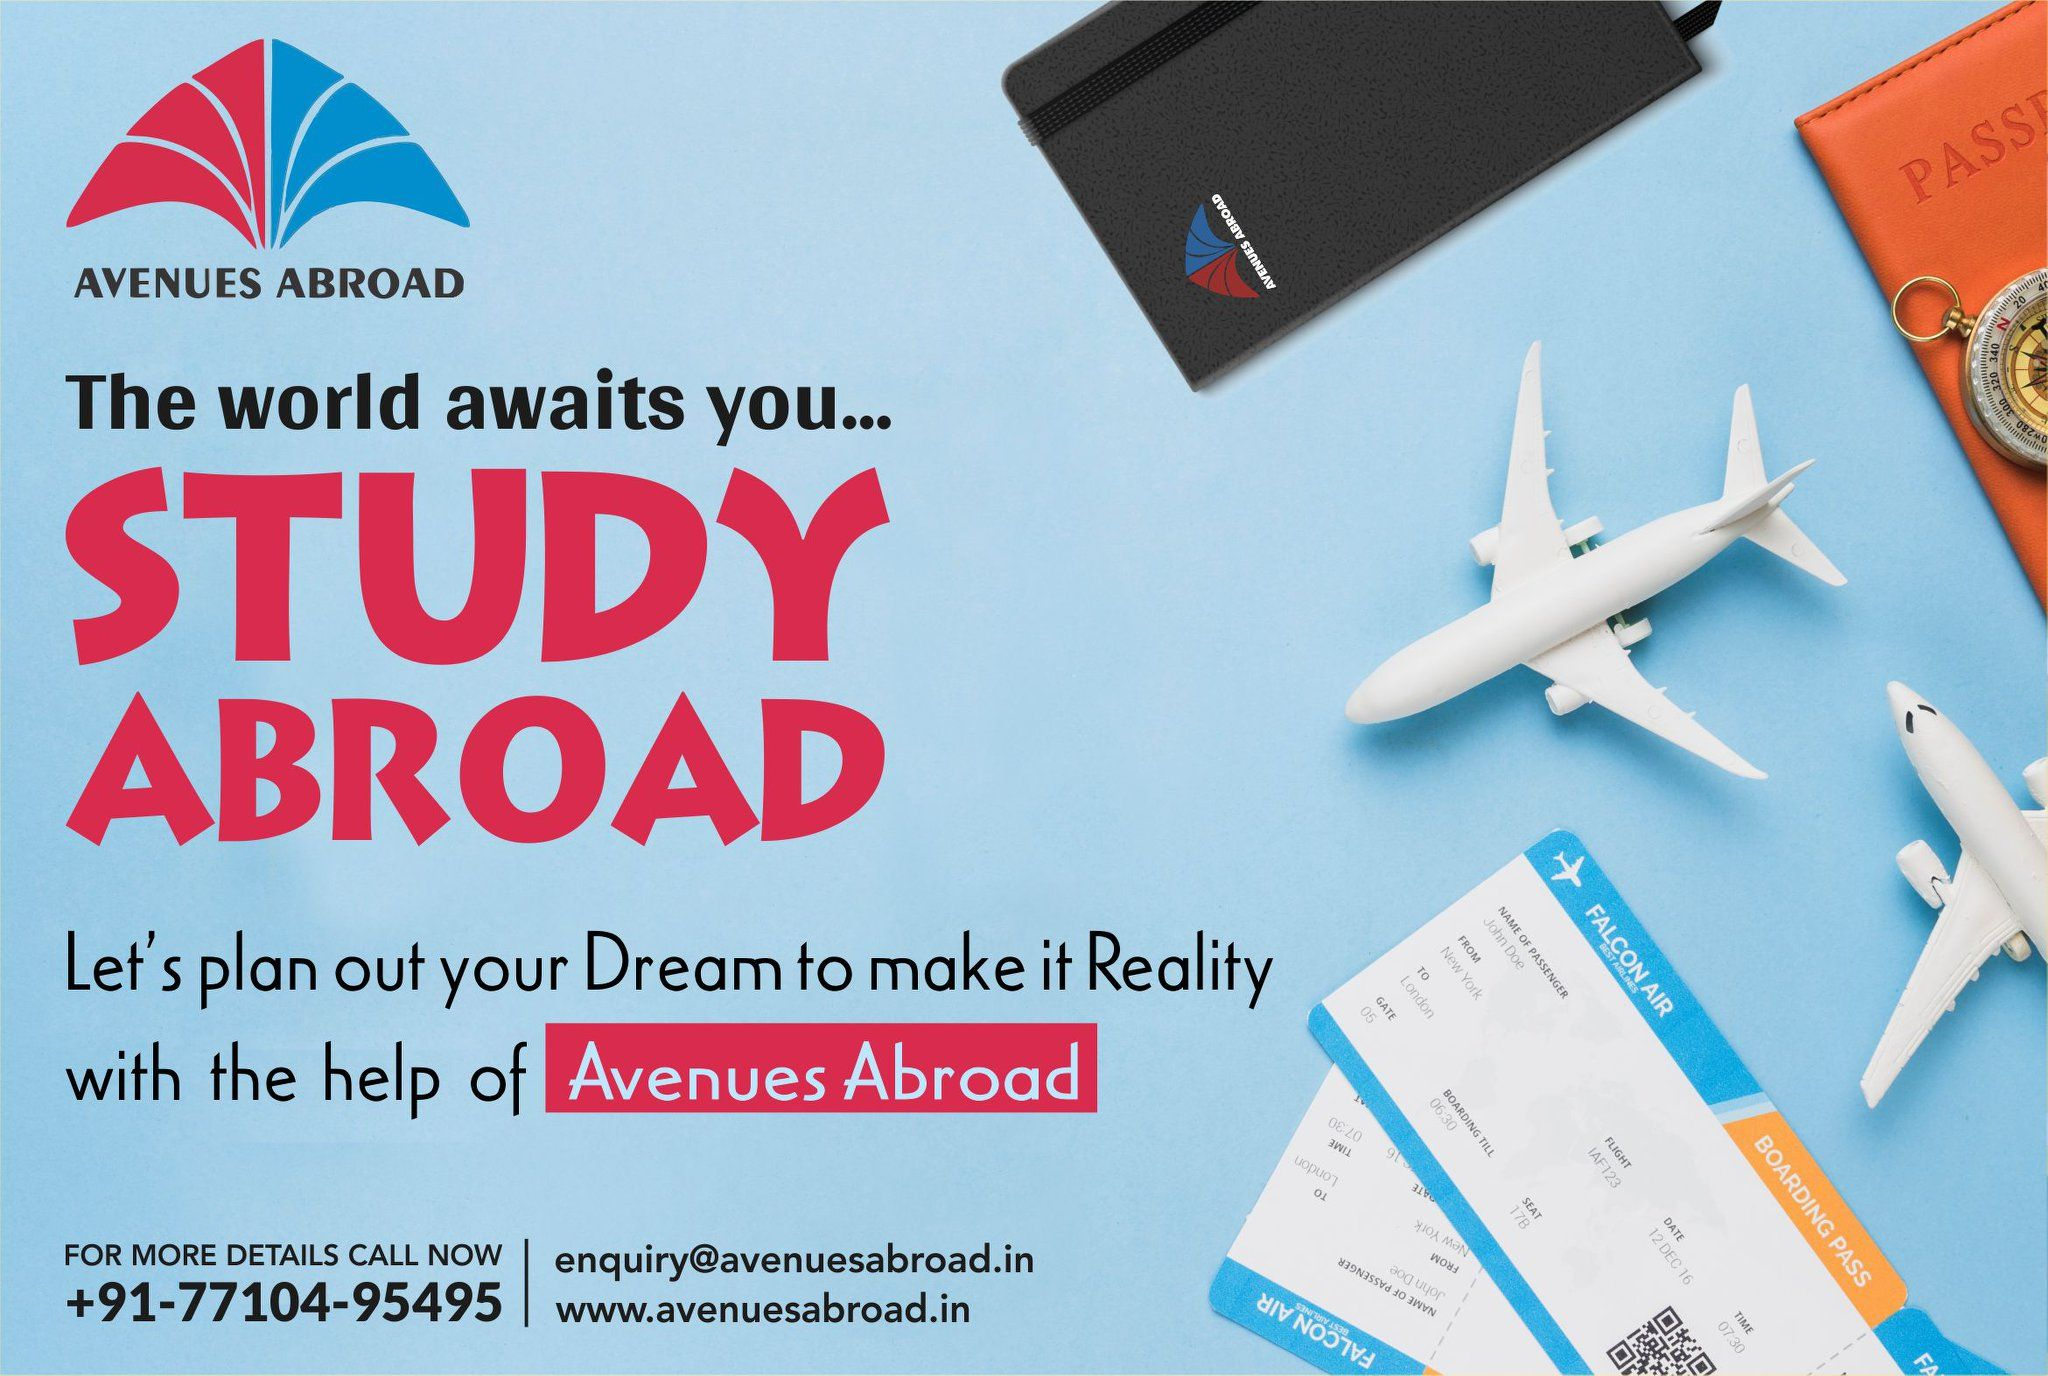 A prospective candidate aiming for an overseas career in a